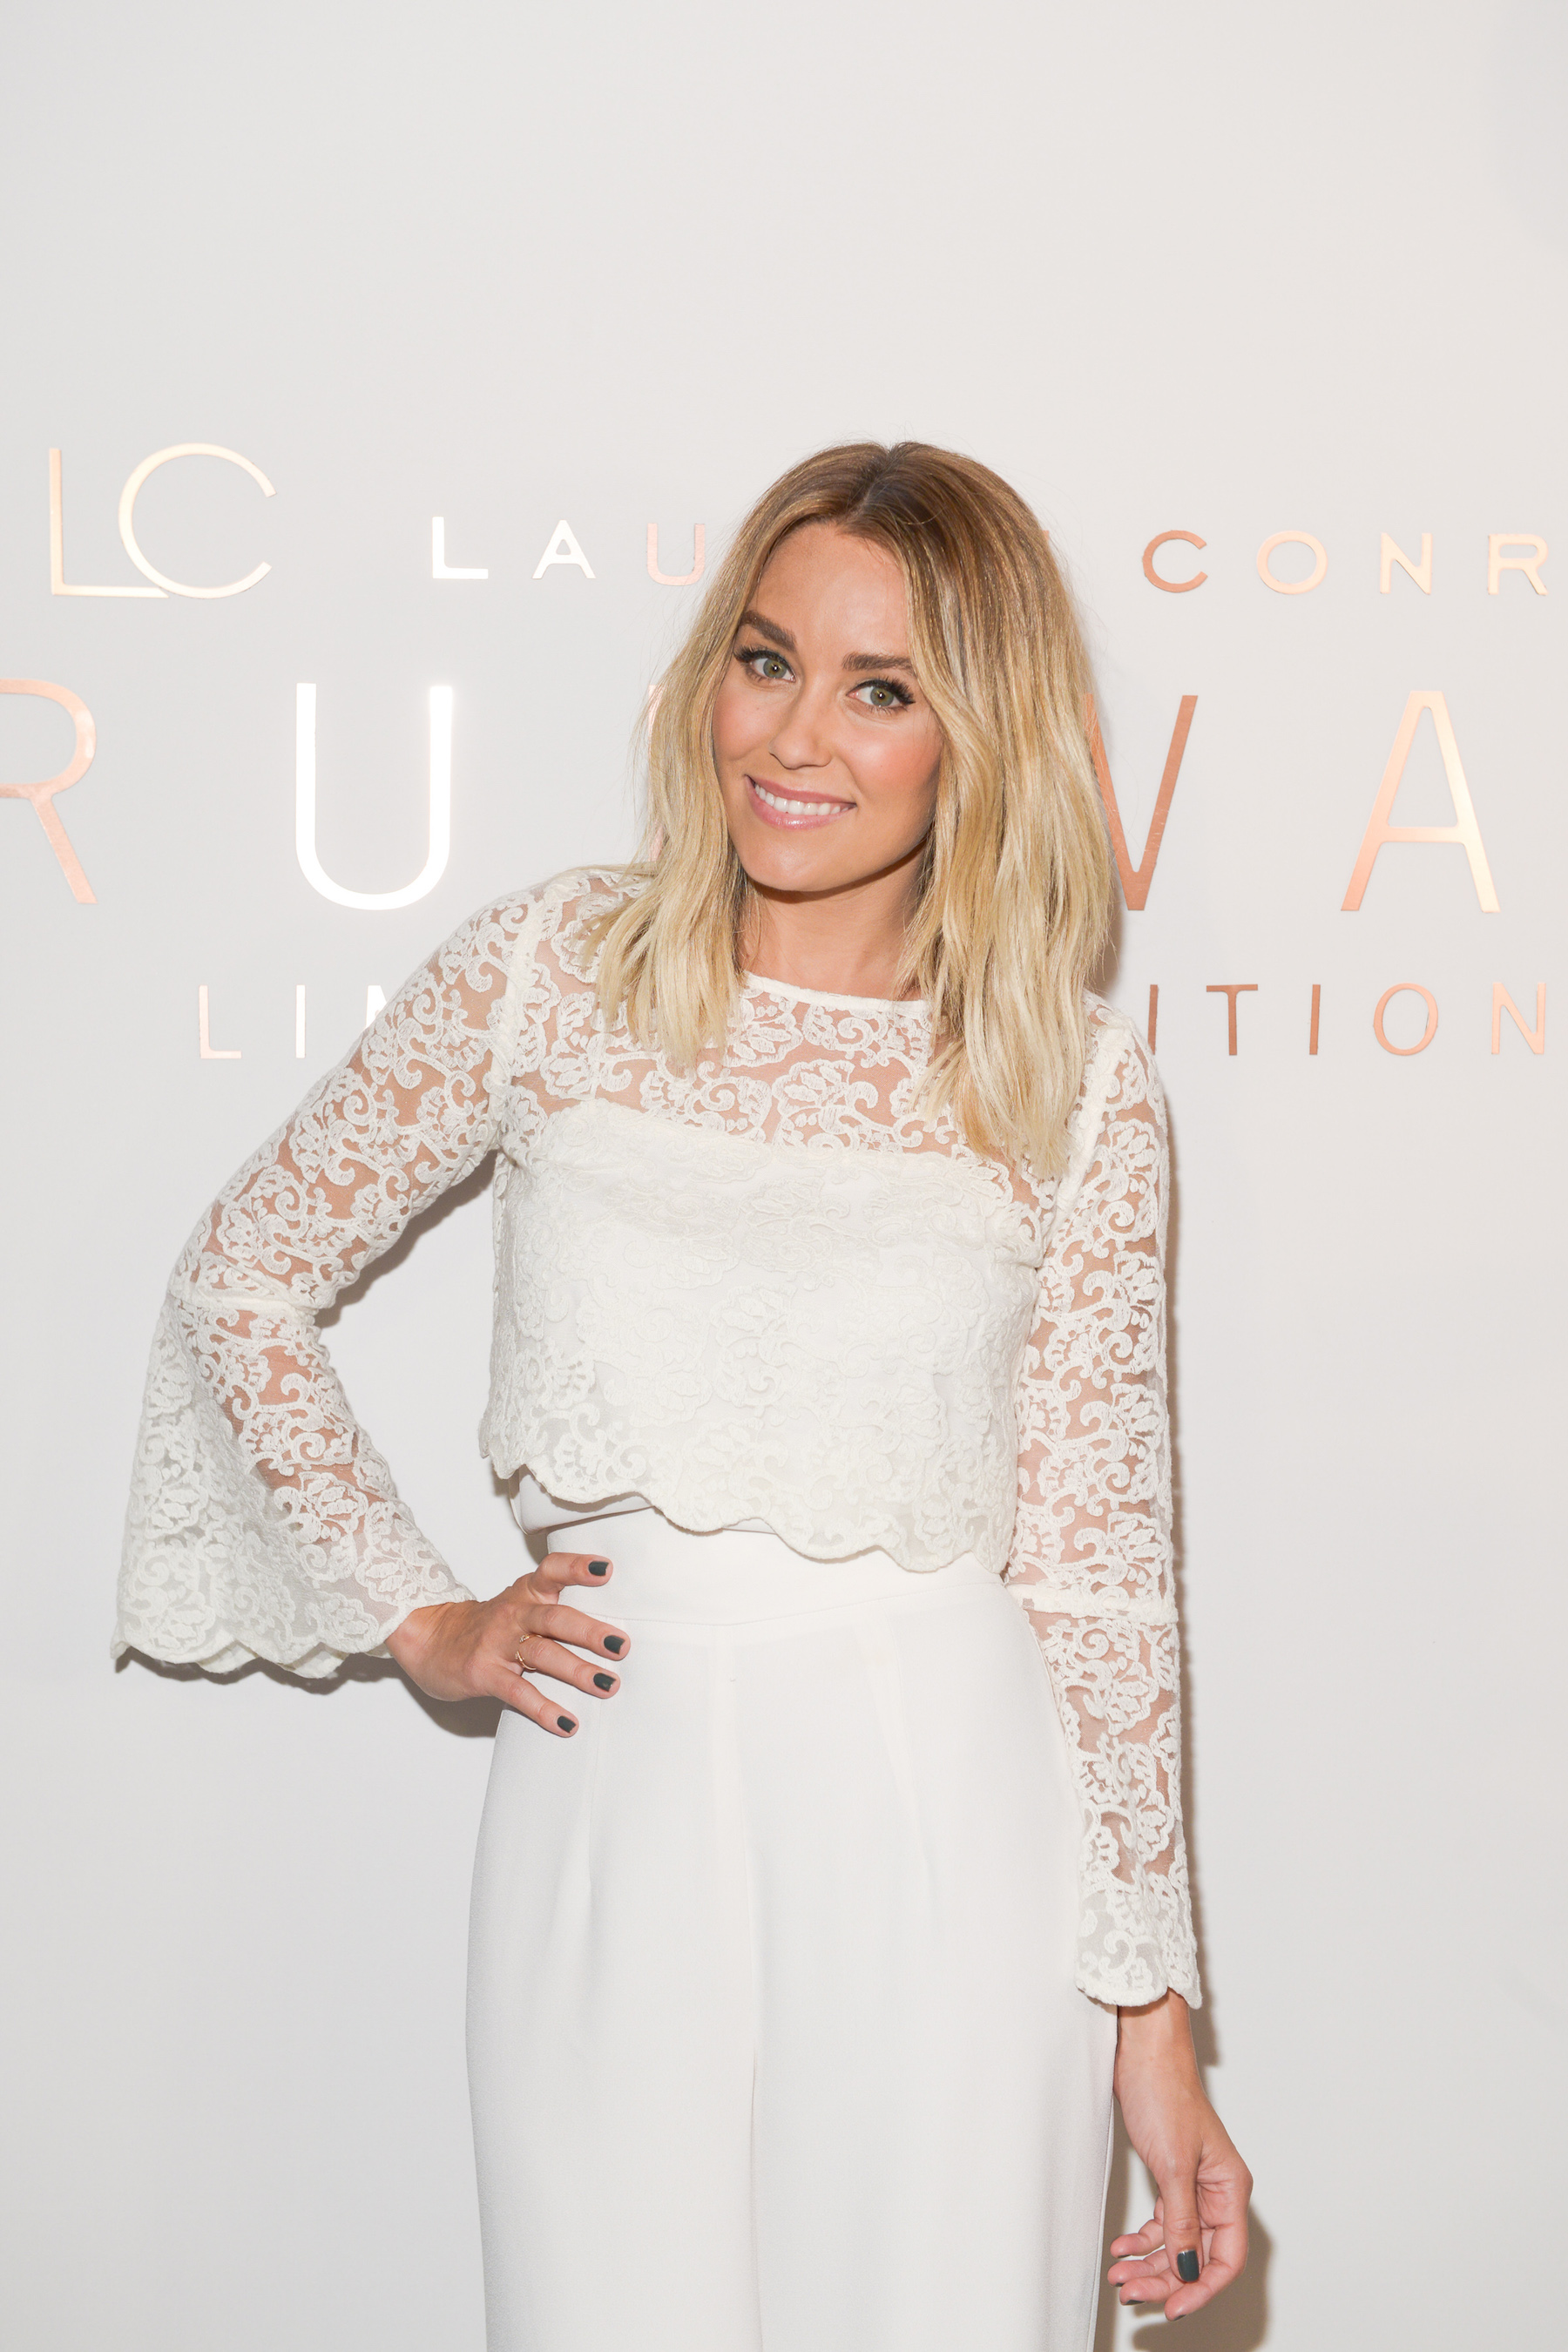 Fashion designer and author Lauren Conrad at her first-ever New York Fashion Week show.